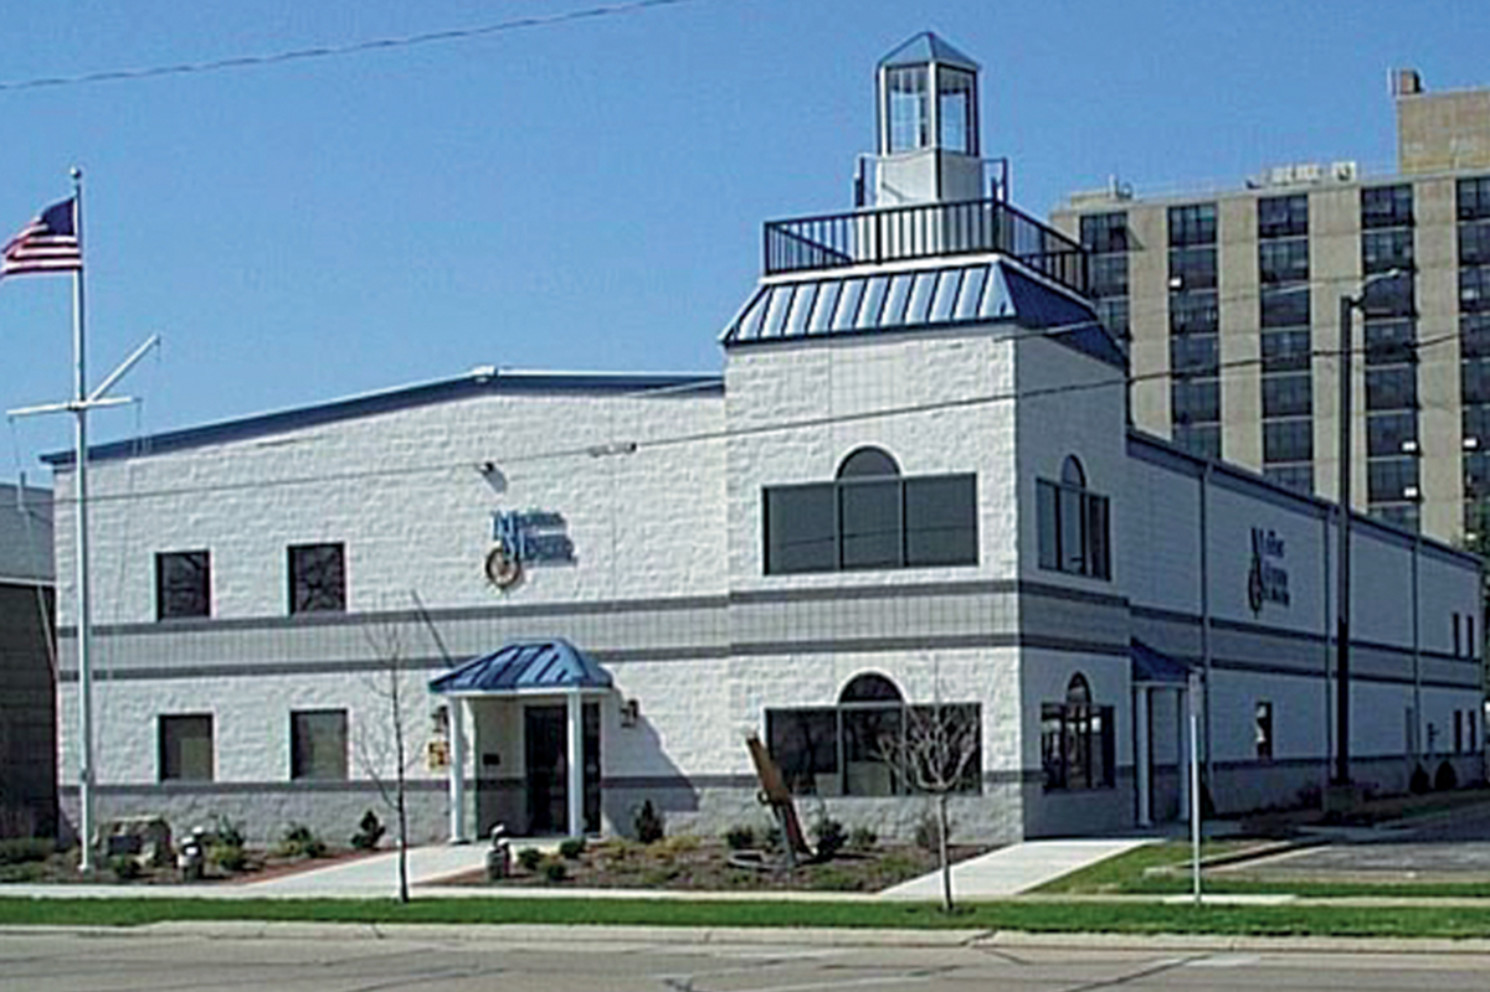 Maritime Museum - Erie County Ohio Historical Society